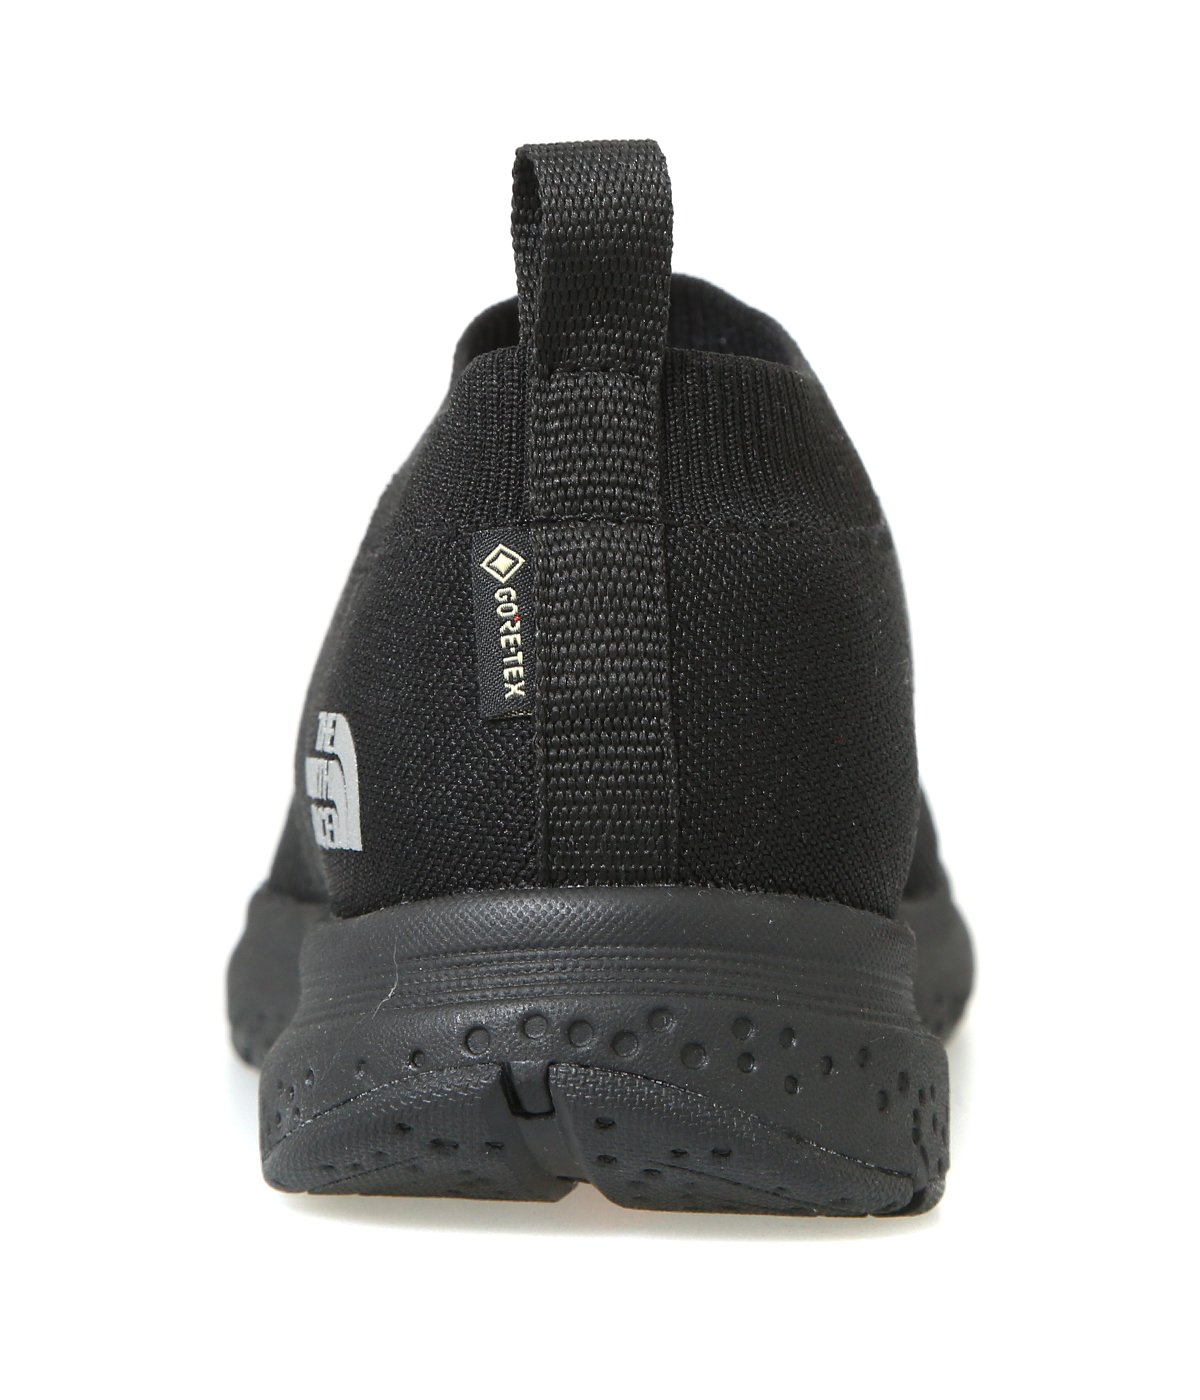 Velocity Knit GORE-TEX Invisible Fit